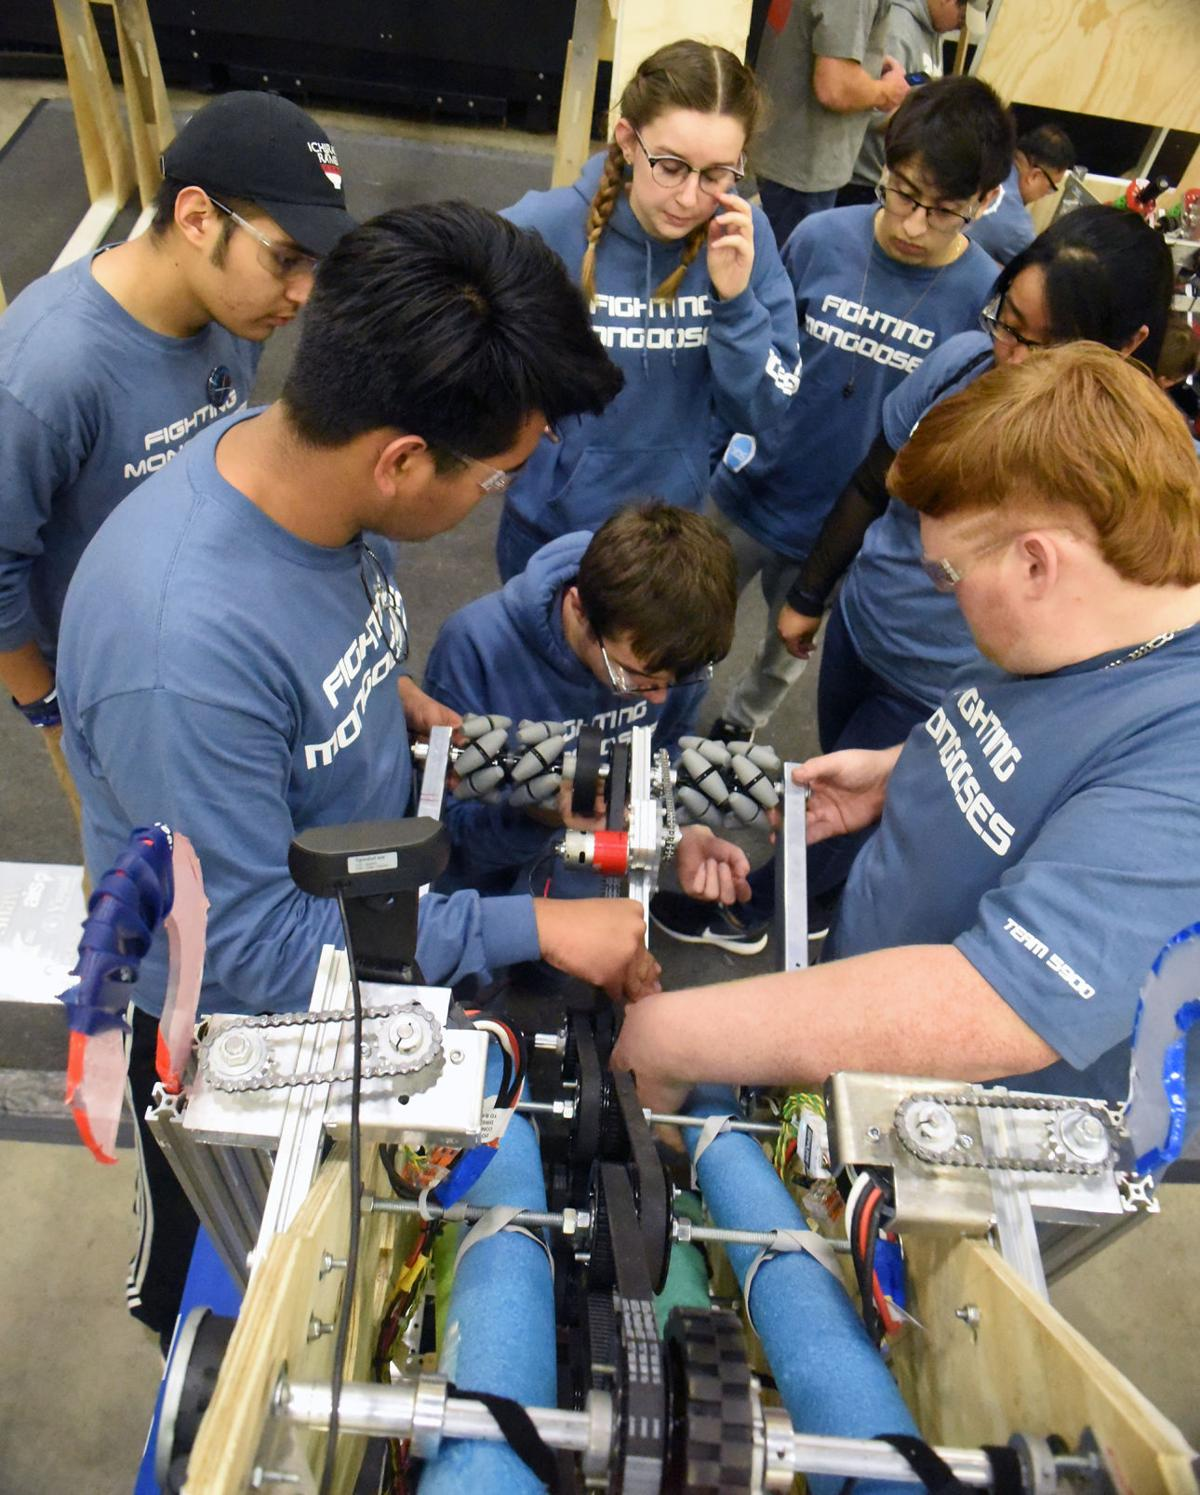 Robots competition '20 8 mlh.jpg